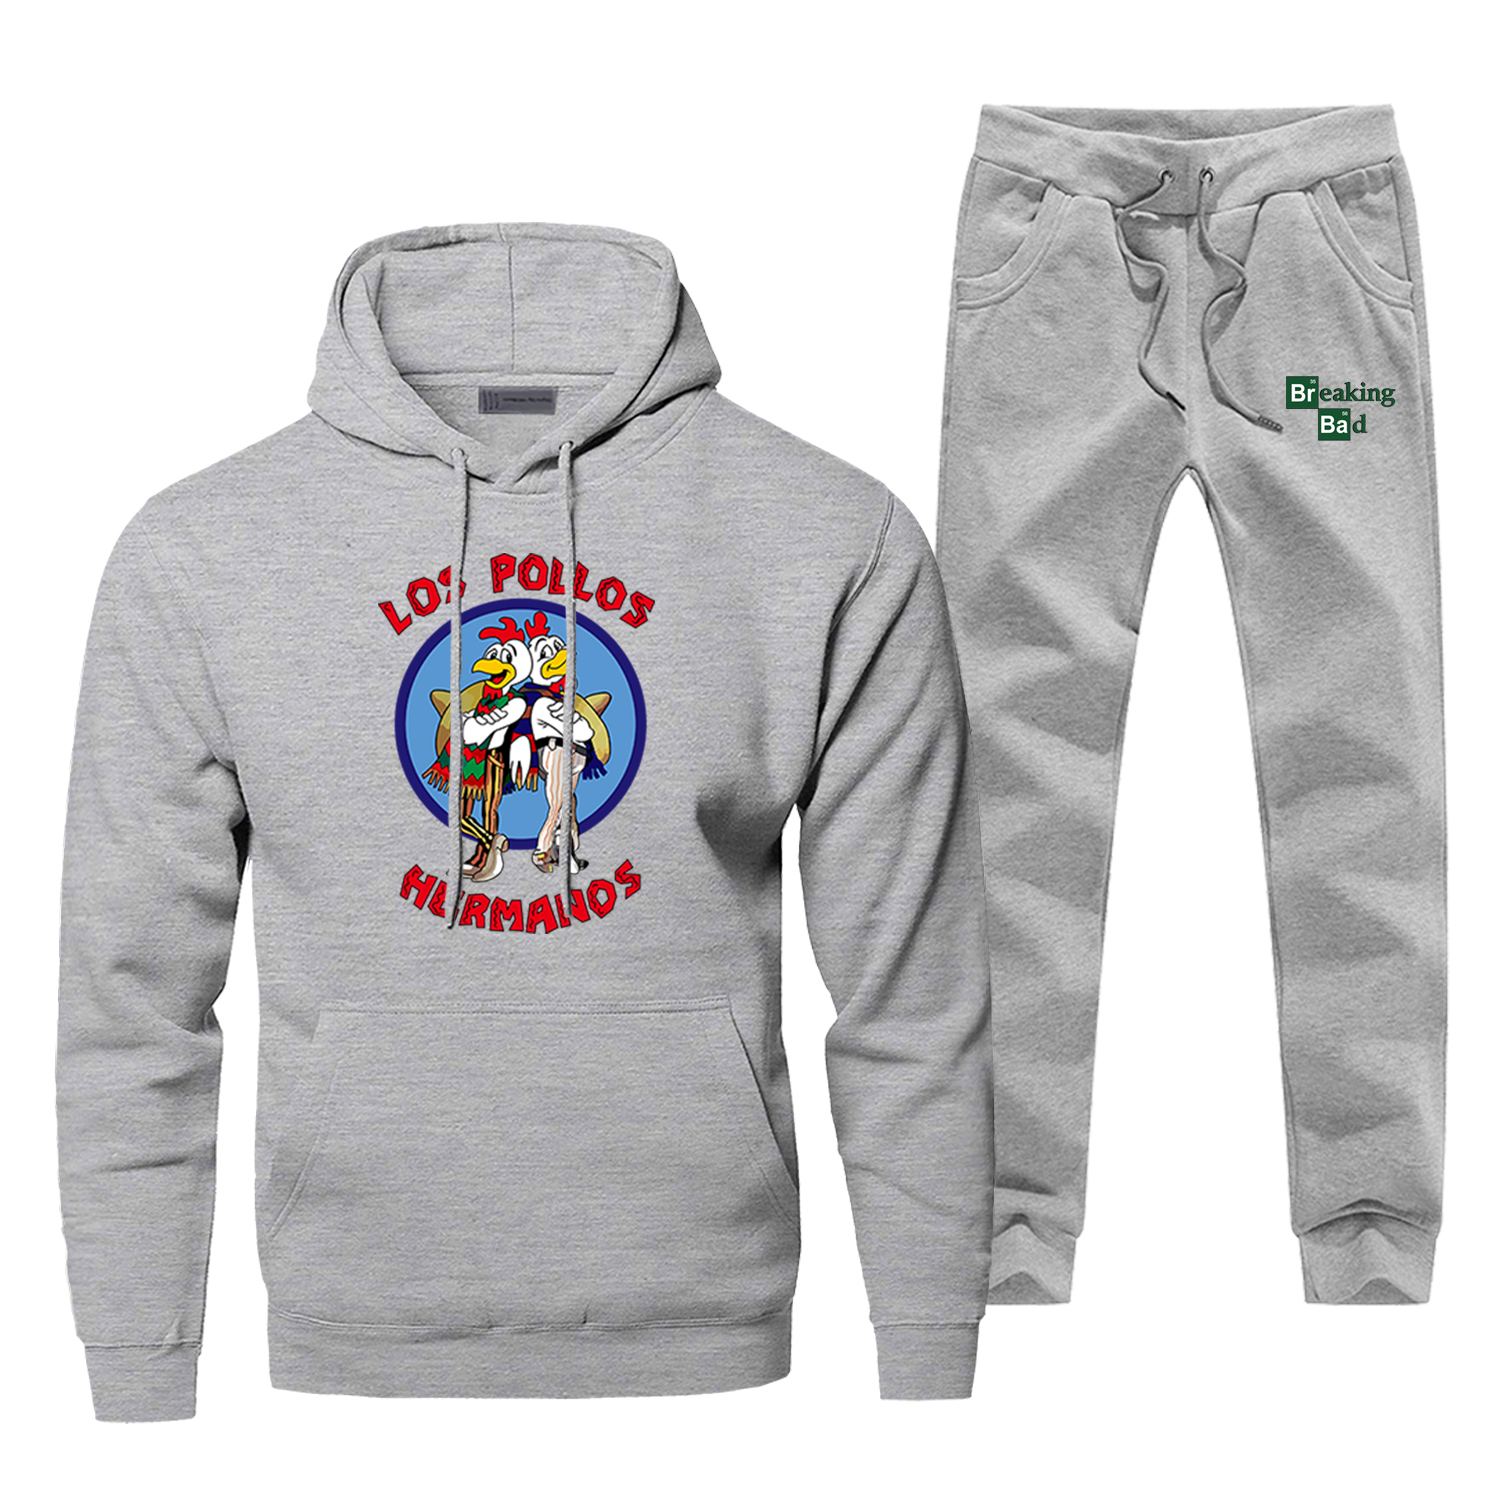 Breaking Bad LOS POLLOS Hermanos Men Hoodies Sweatshirts Pants Sets Hooded Hoodie Suit Tracksuit 2 PCS Hoody Pant Pullover Set